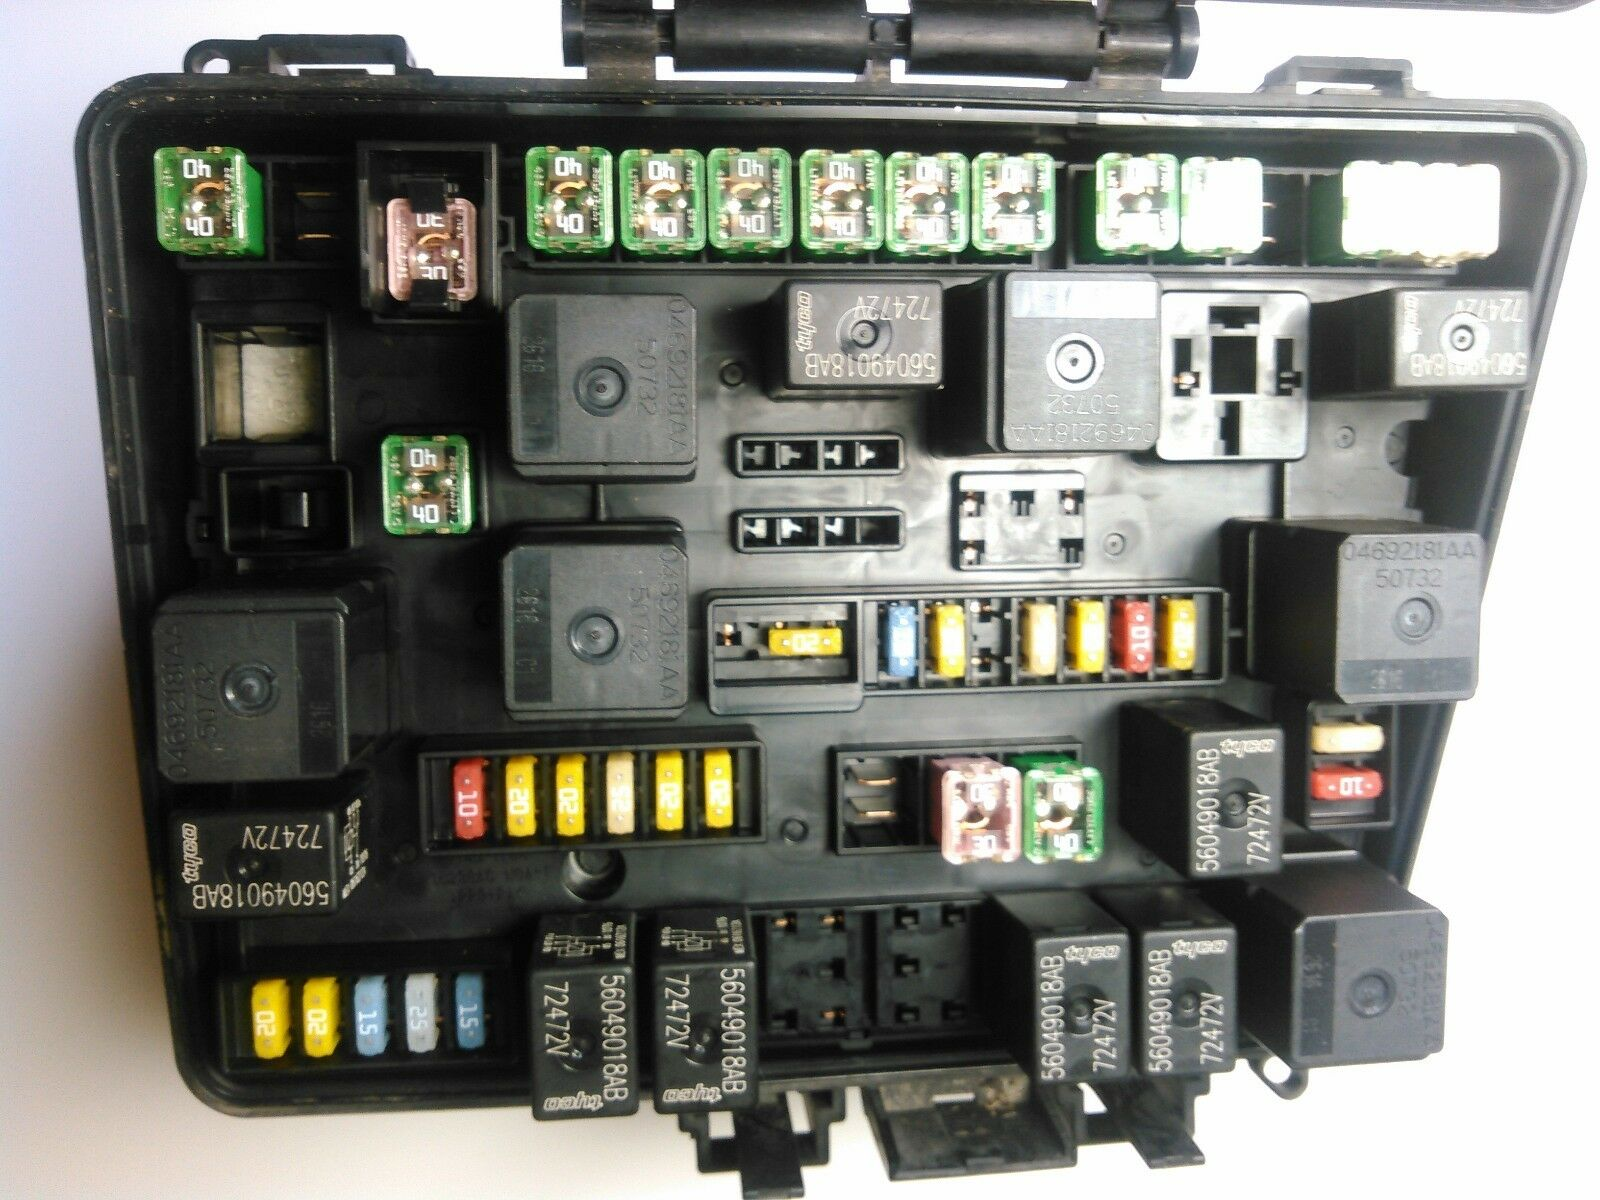 2007 2008 Chrysler Pacifica Integrated Power Module Fuse Box Oem 03 Tipm 05082088af 1 Of 5only 2 Available See More